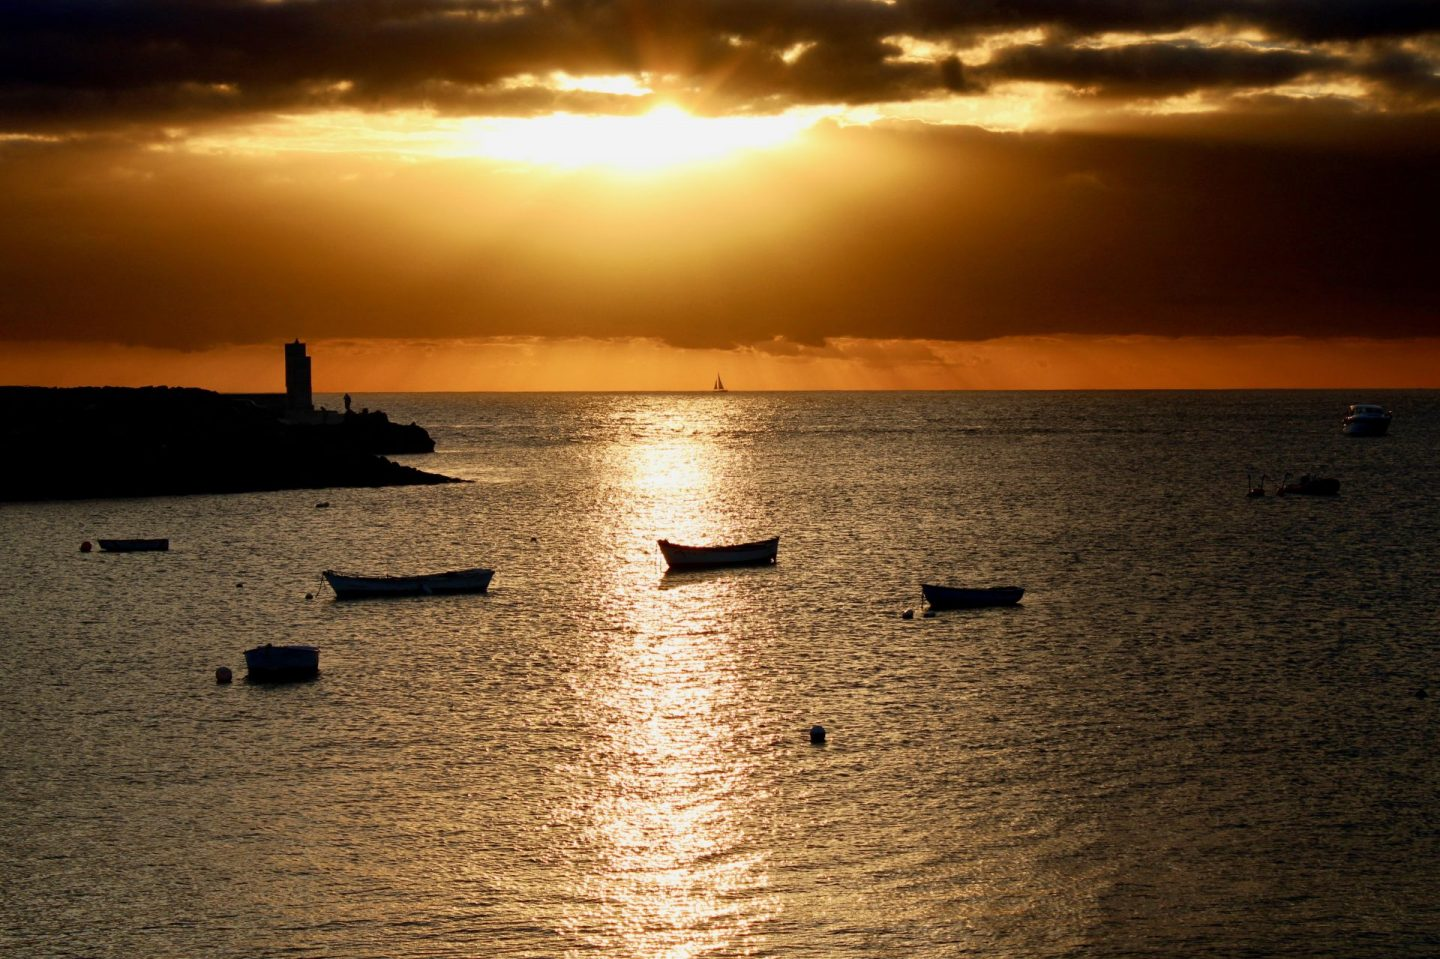 A sunset from El Mirador in Playa Blanca, showing a view out of the sea with the sun shining through the clouds and creating a reflection on the water